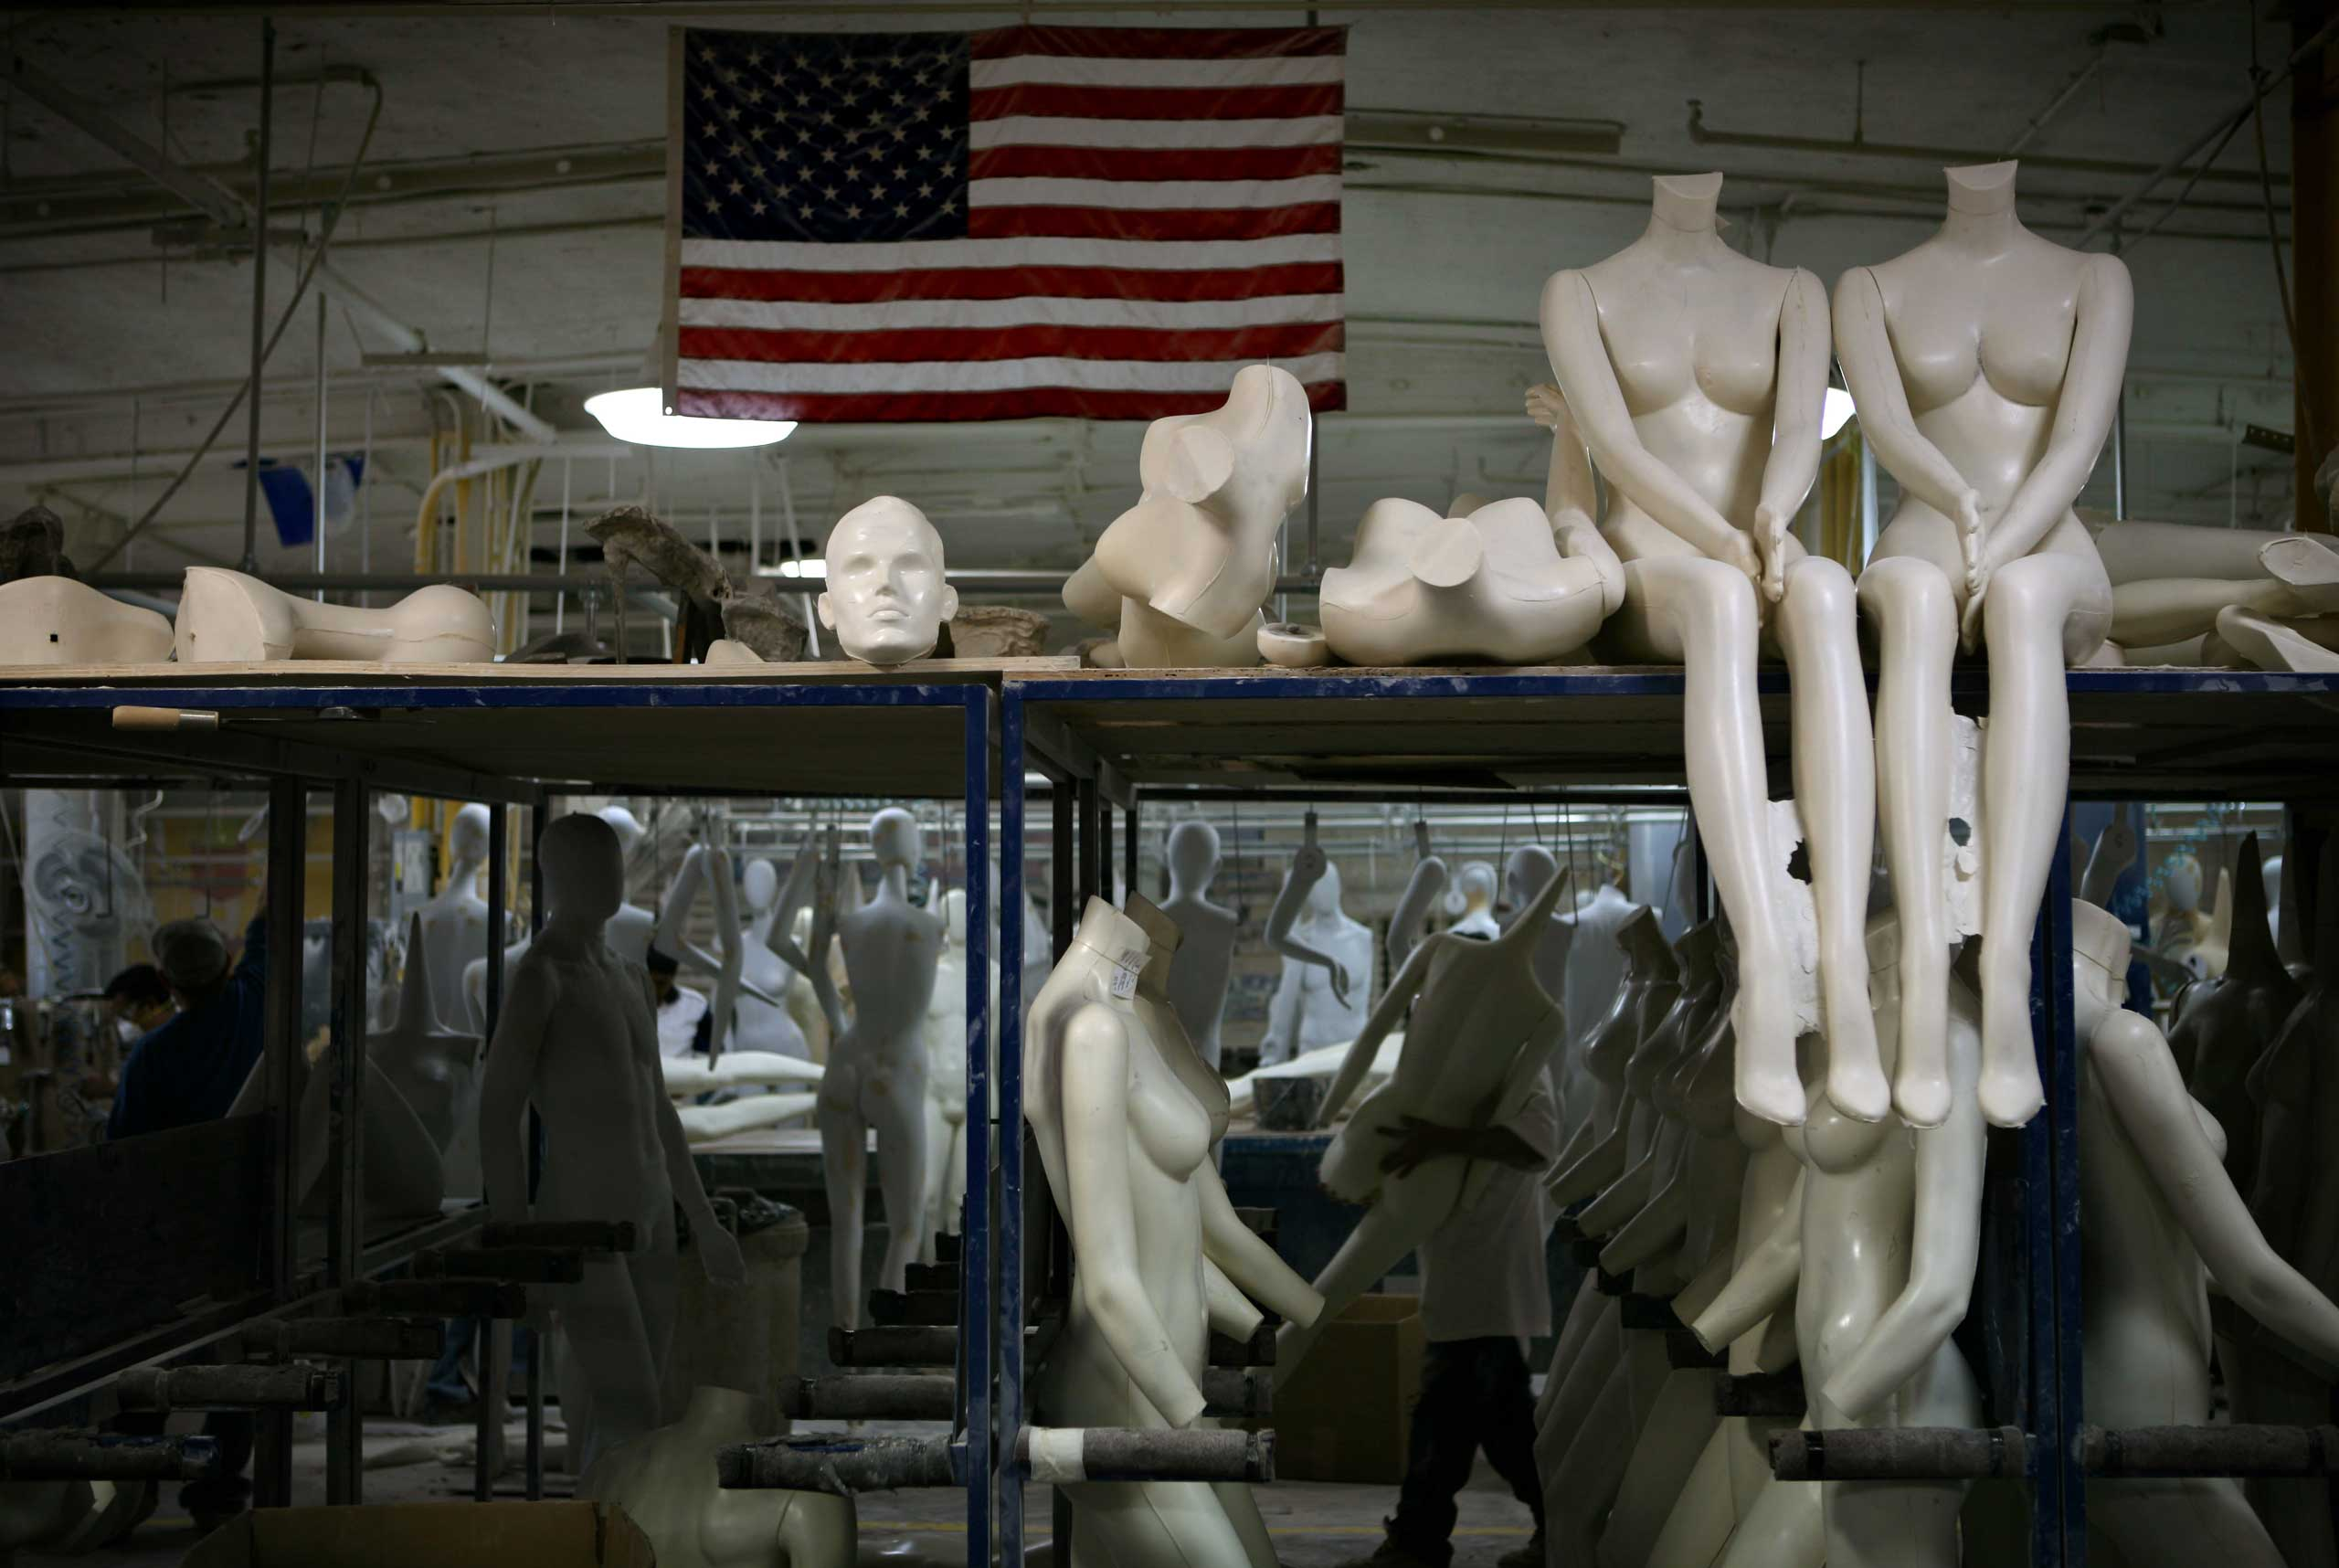 A Goldsmith employee carries a mannequin at the Goldsmith factory in New York.